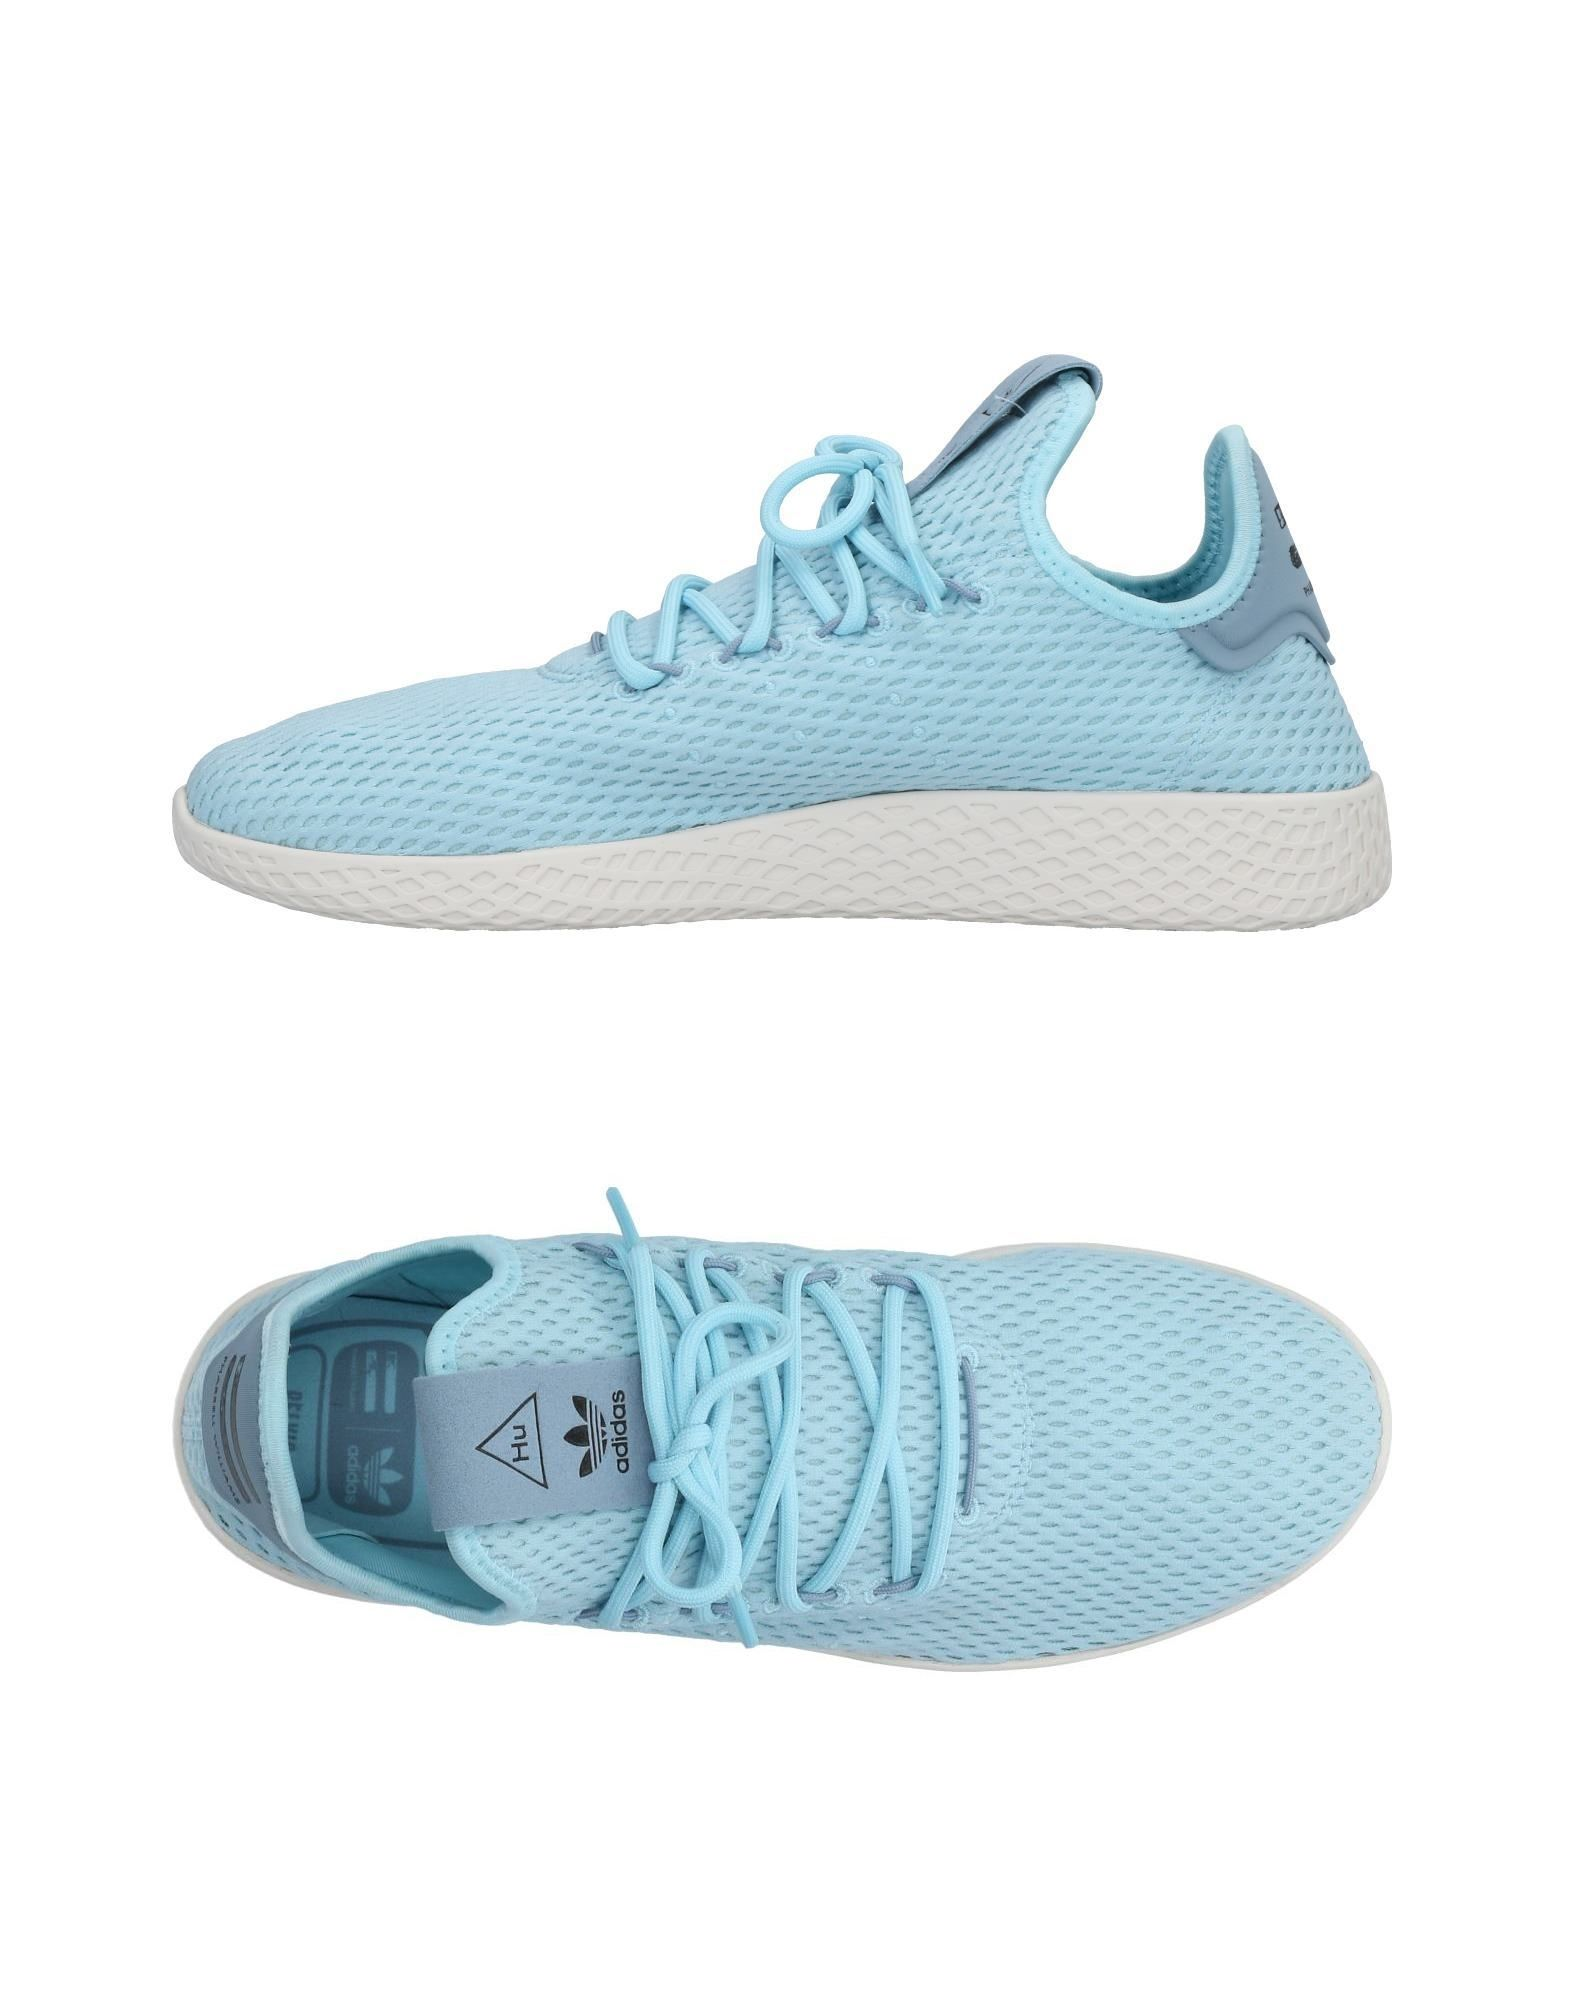 Sneakers Williams Adidas Originals By Pharrell Williams Sneakers Uomo - 11481343BV f46330